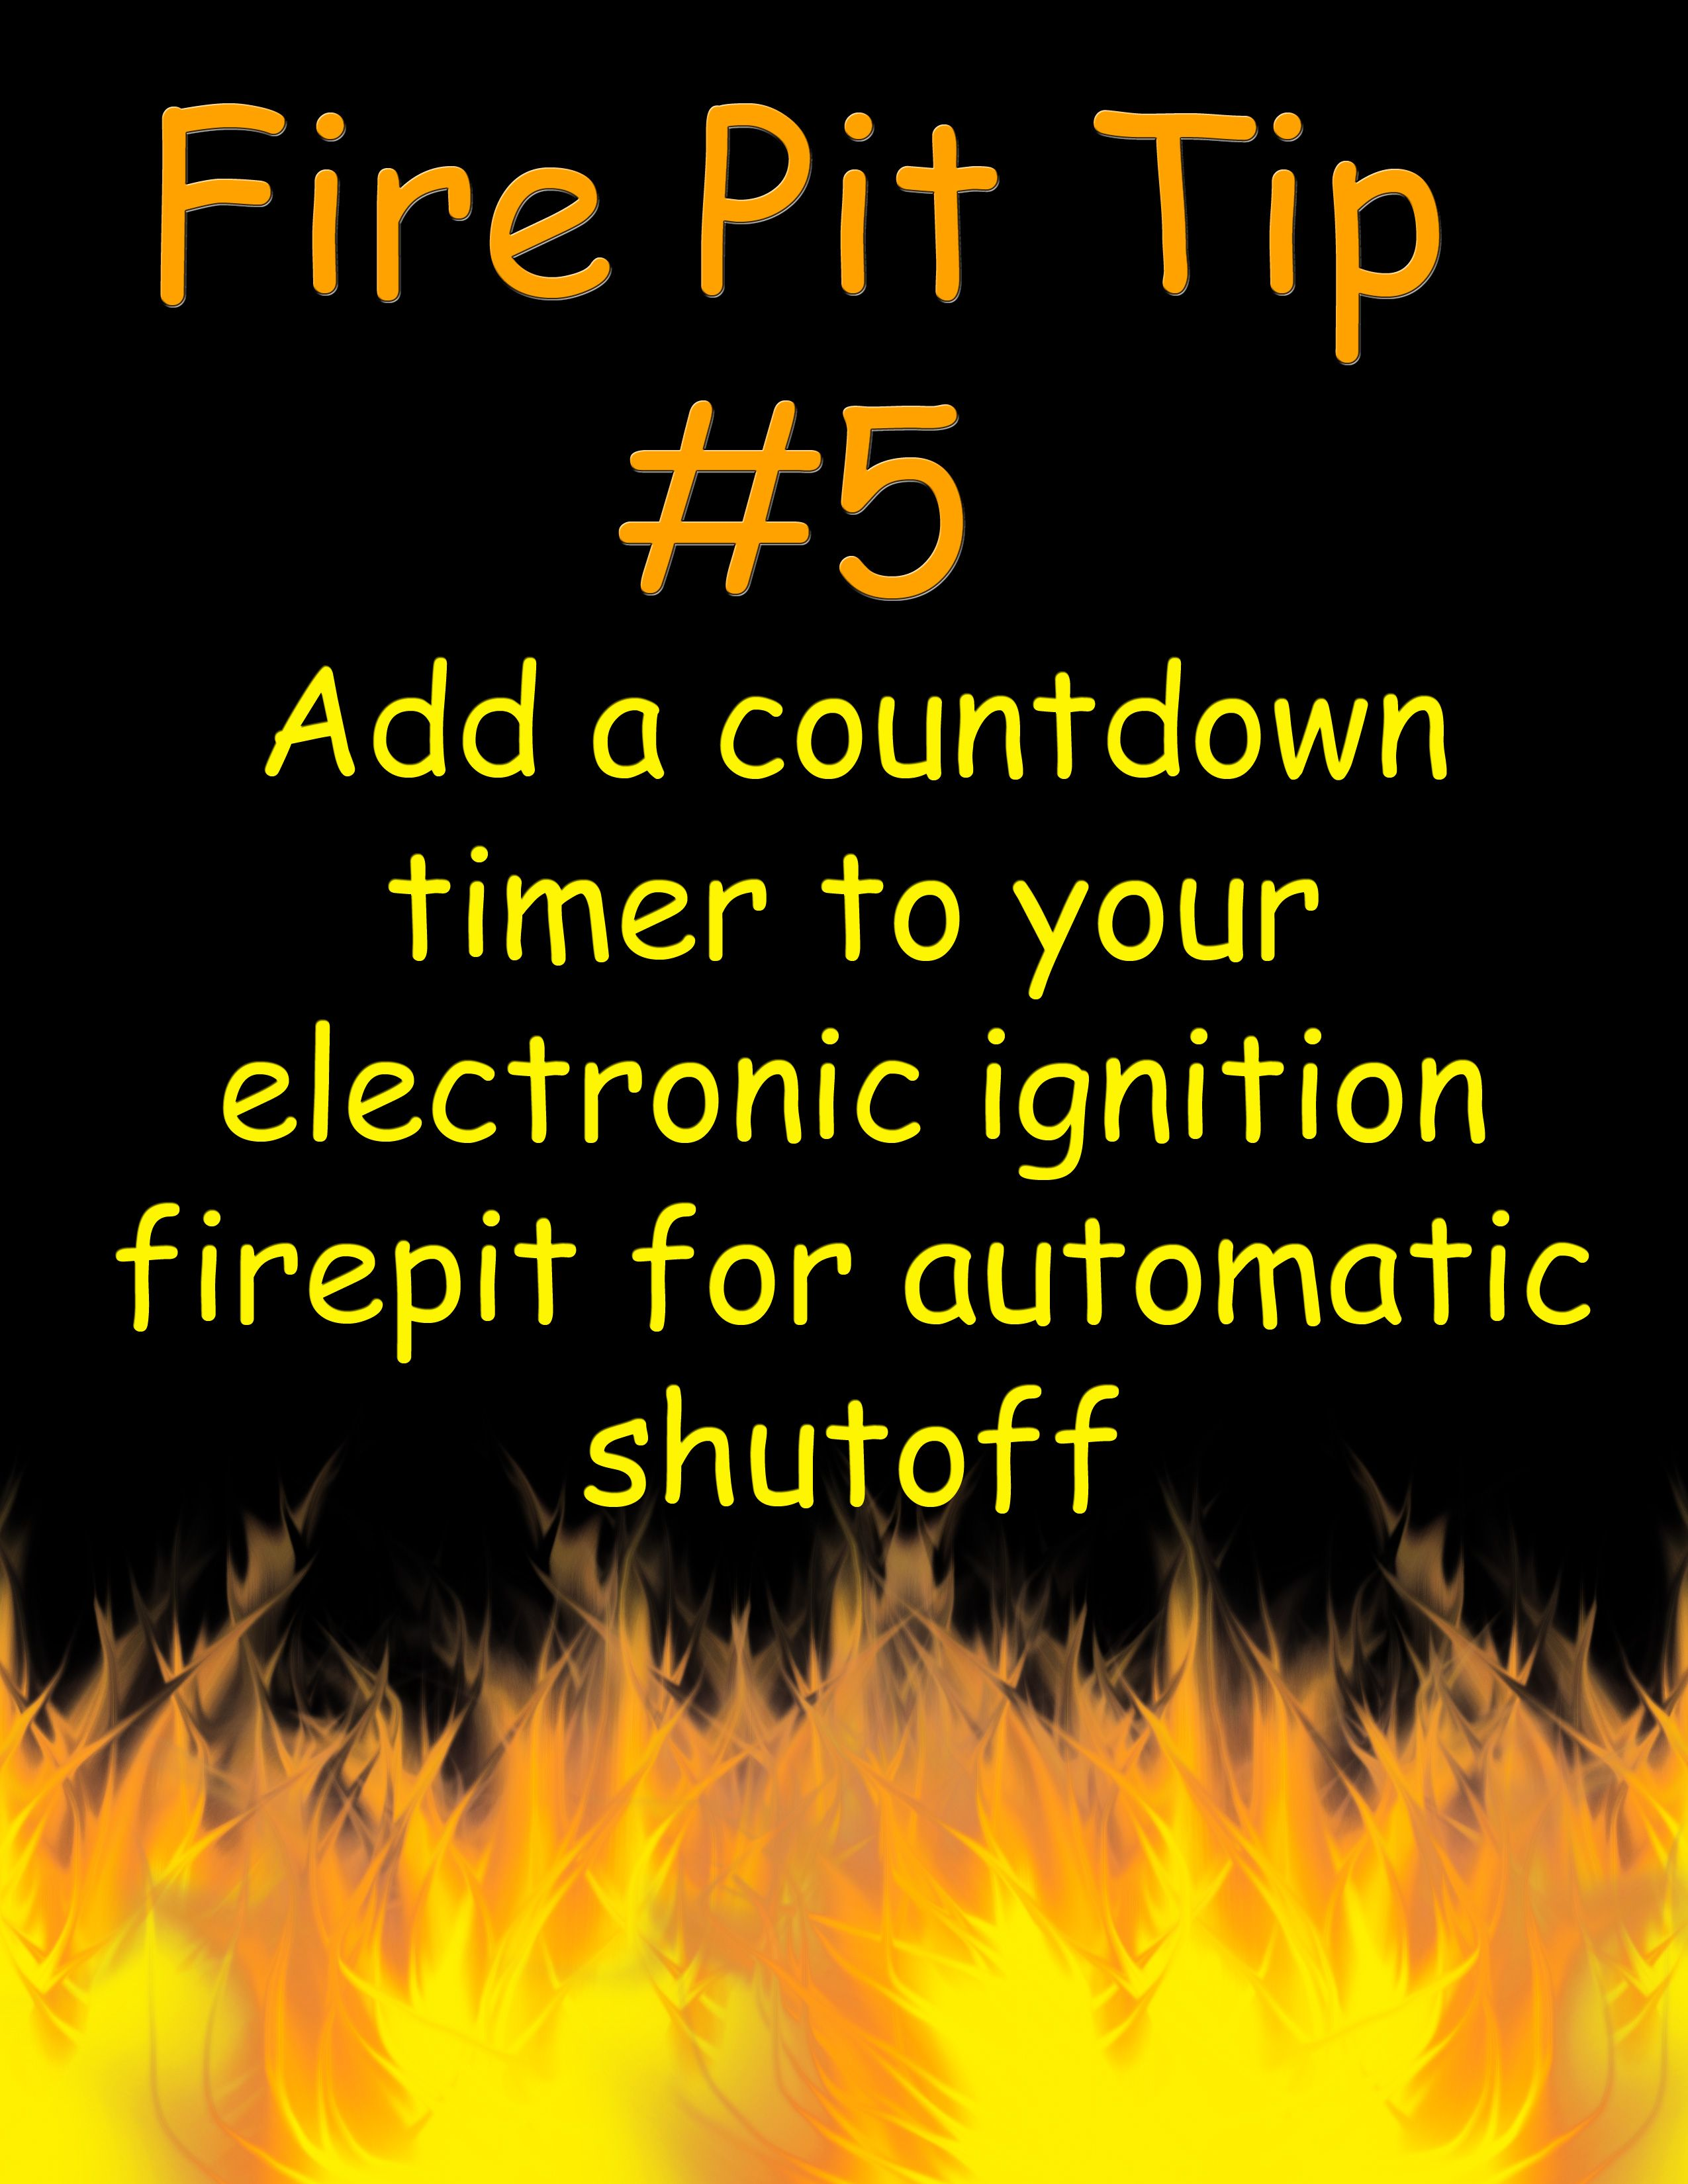 Add A Countdown Timer To Your Electronic Ignition Fire Pit